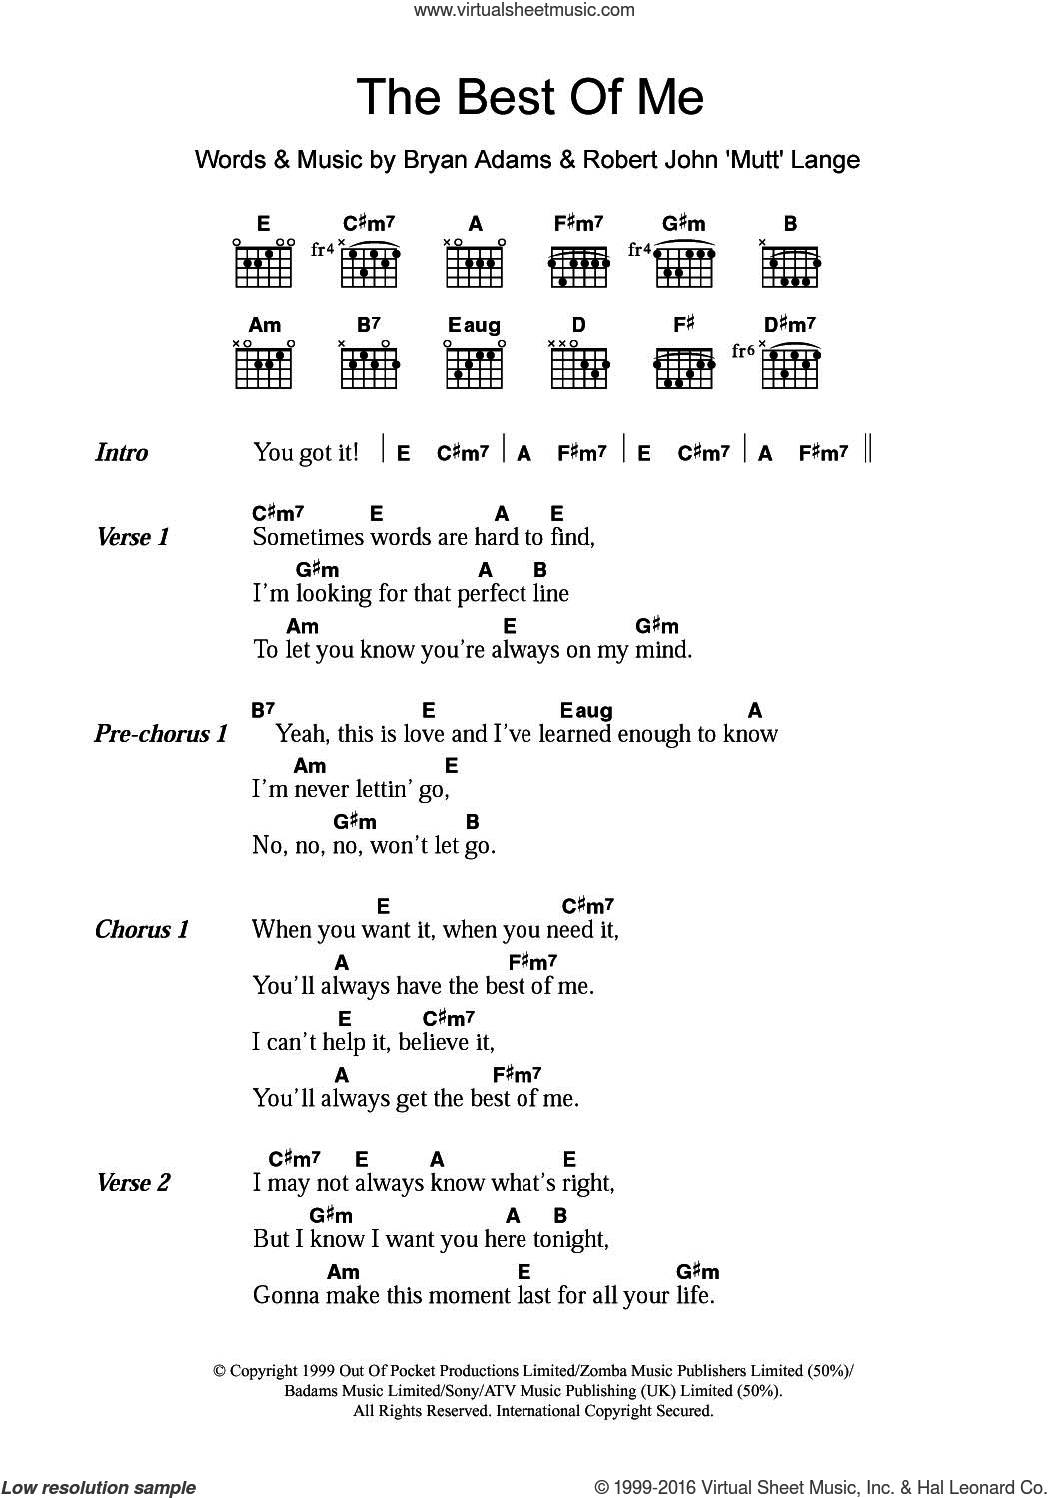 The Best Of Me sheet music for guitar (chords) by Bryan Adams and Robert John Lange, intermediate skill level